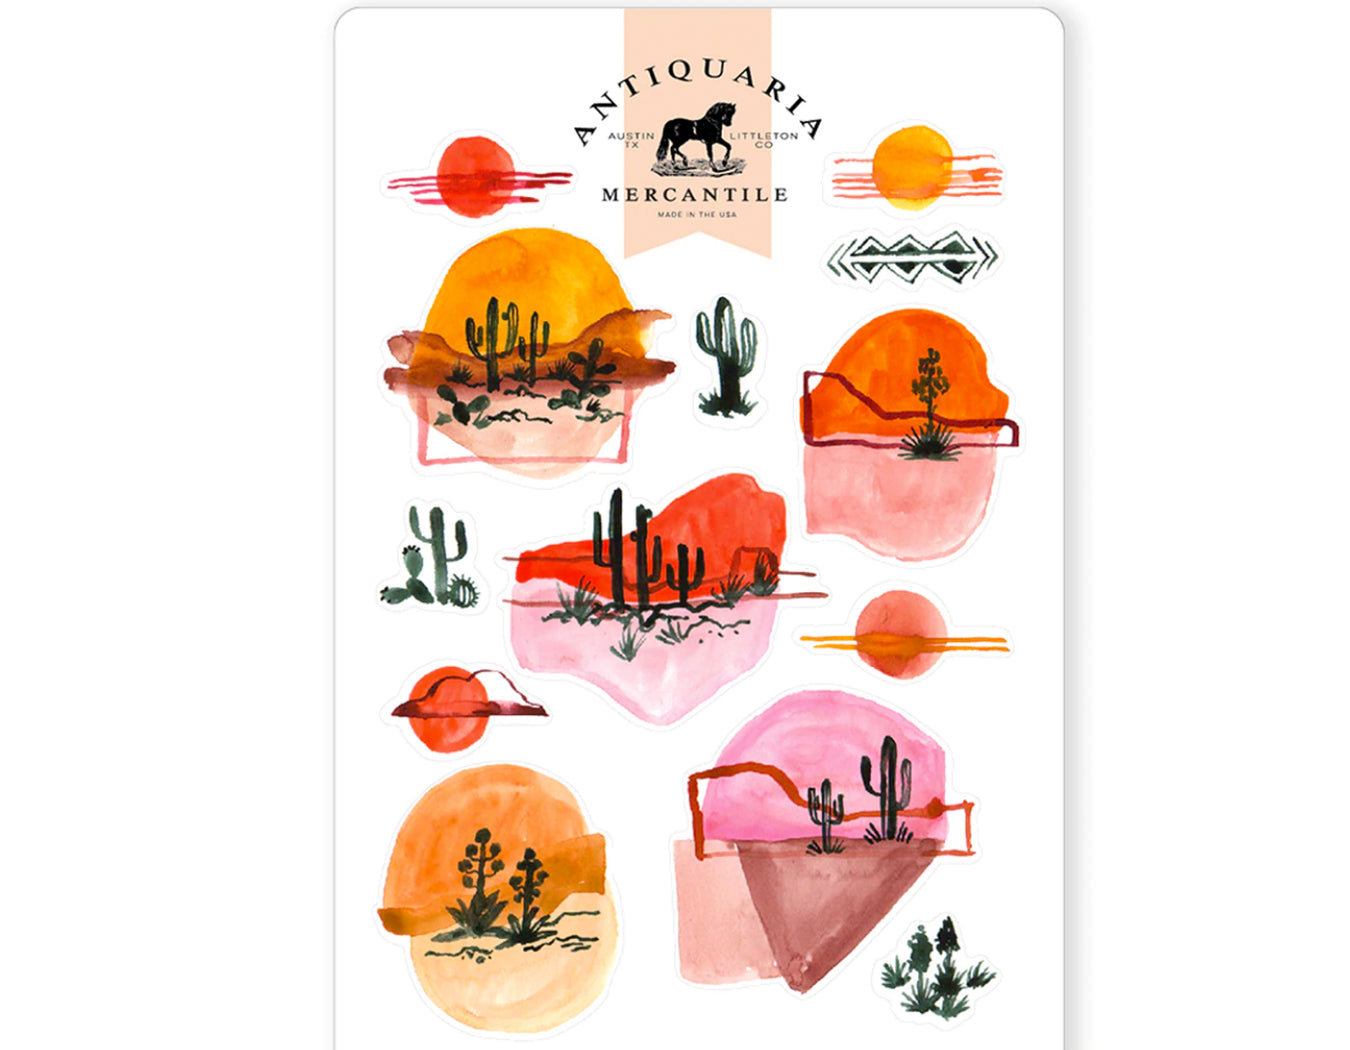 stickers of desert landscapes made from watercolor drawings